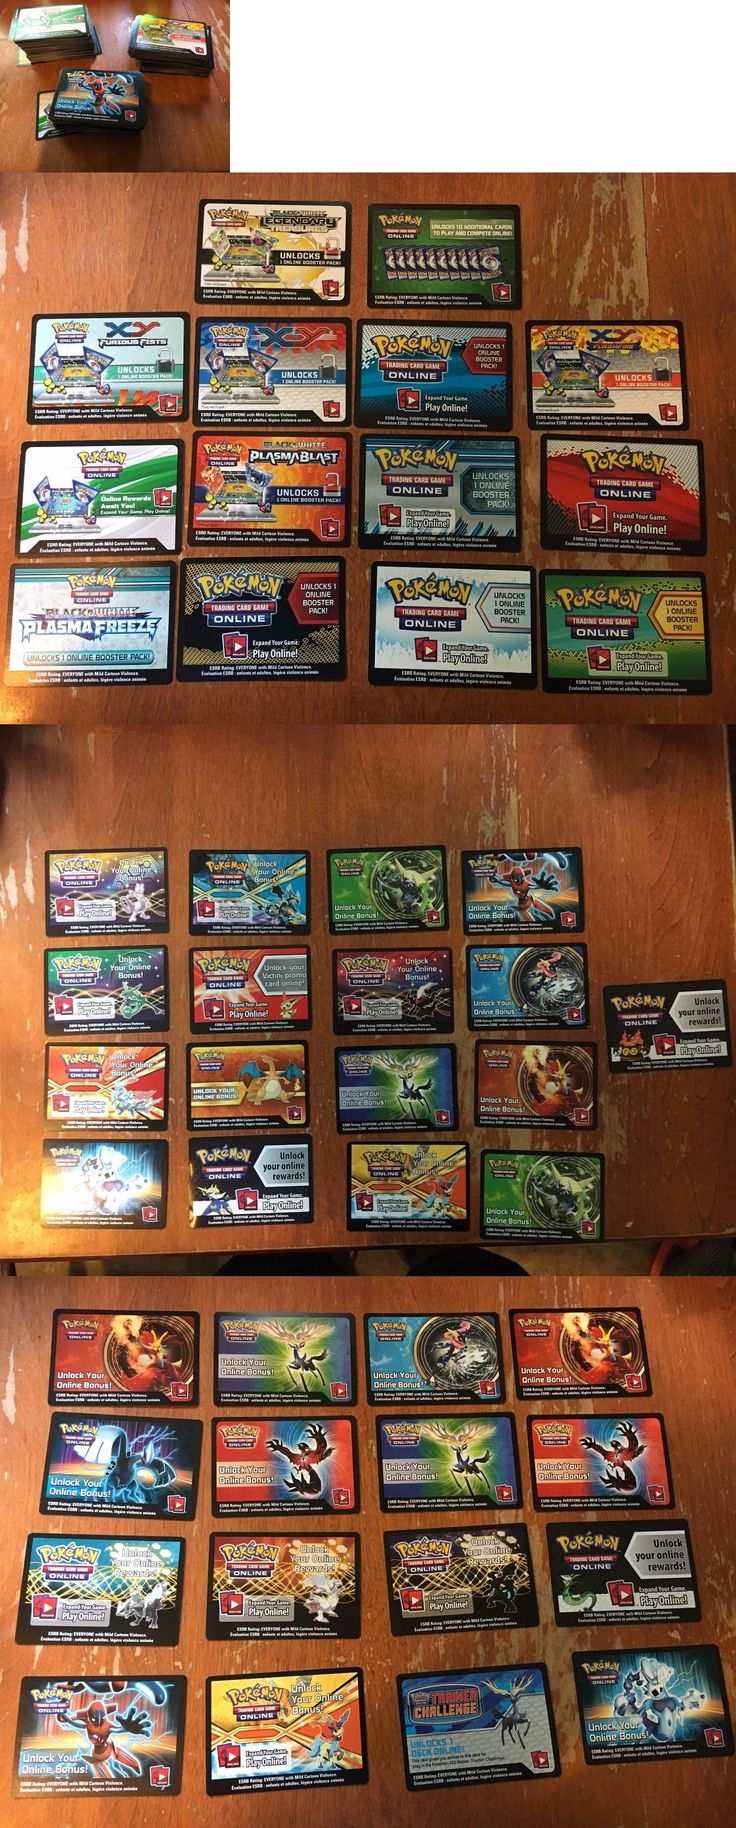 Other Pok mon TCG Items 2608: Huge Pokemon Tcg Online Code Cards Lot -> BUY IT NOW ONLY: $130 on eBay!